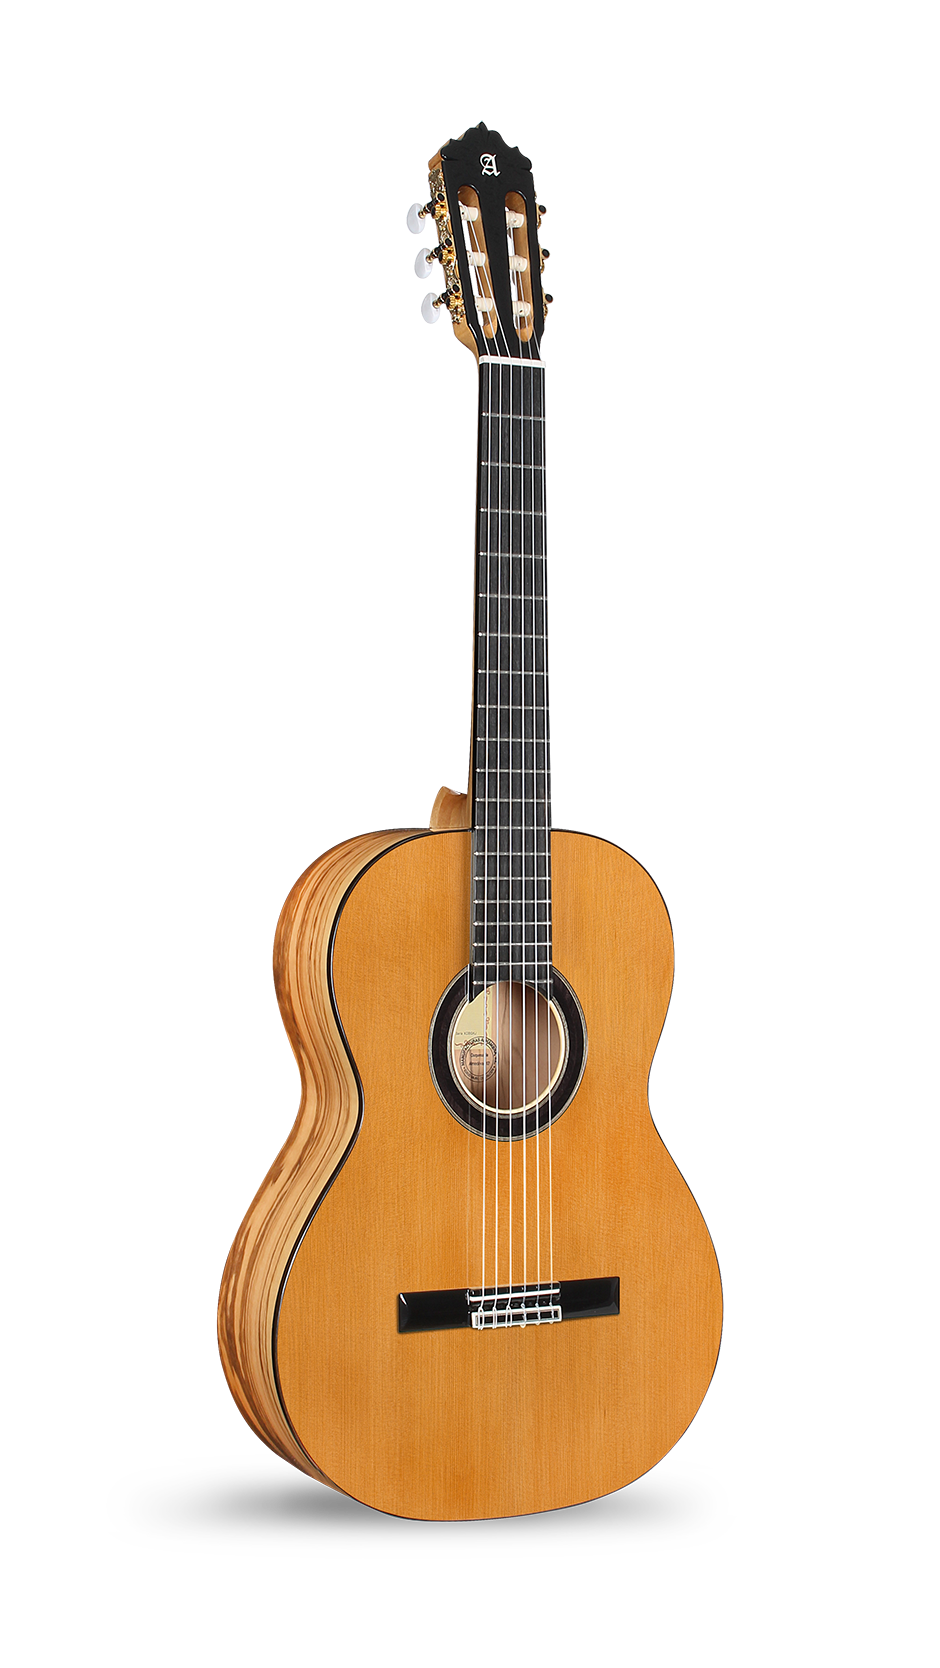 Classical Exotic Woods Custom Collection de Guitarras Alhambra